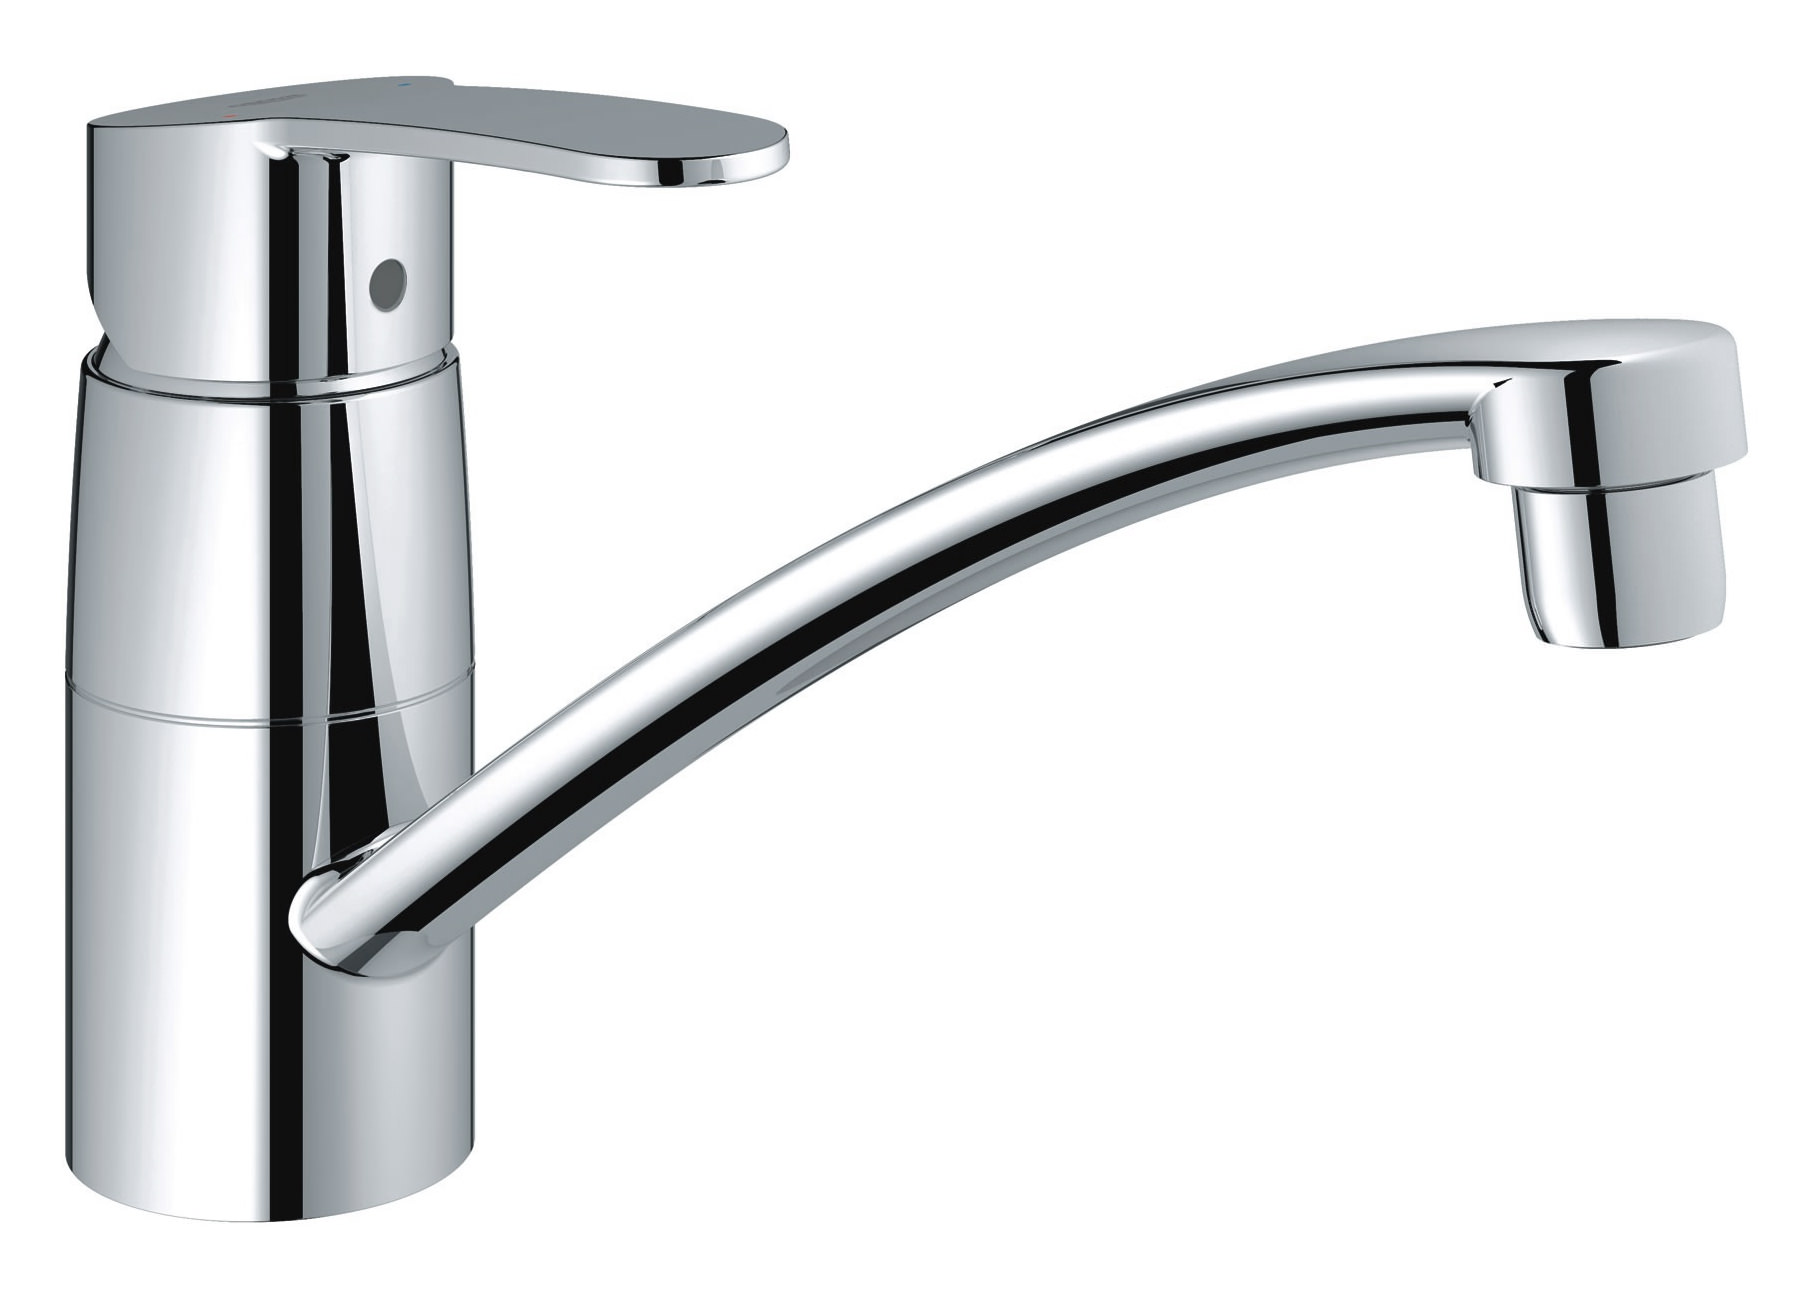 grohe eurostyle cosmopolitan monobloc sink mixer tap 33977002. Black Bedroom Furniture Sets. Home Design Ideas